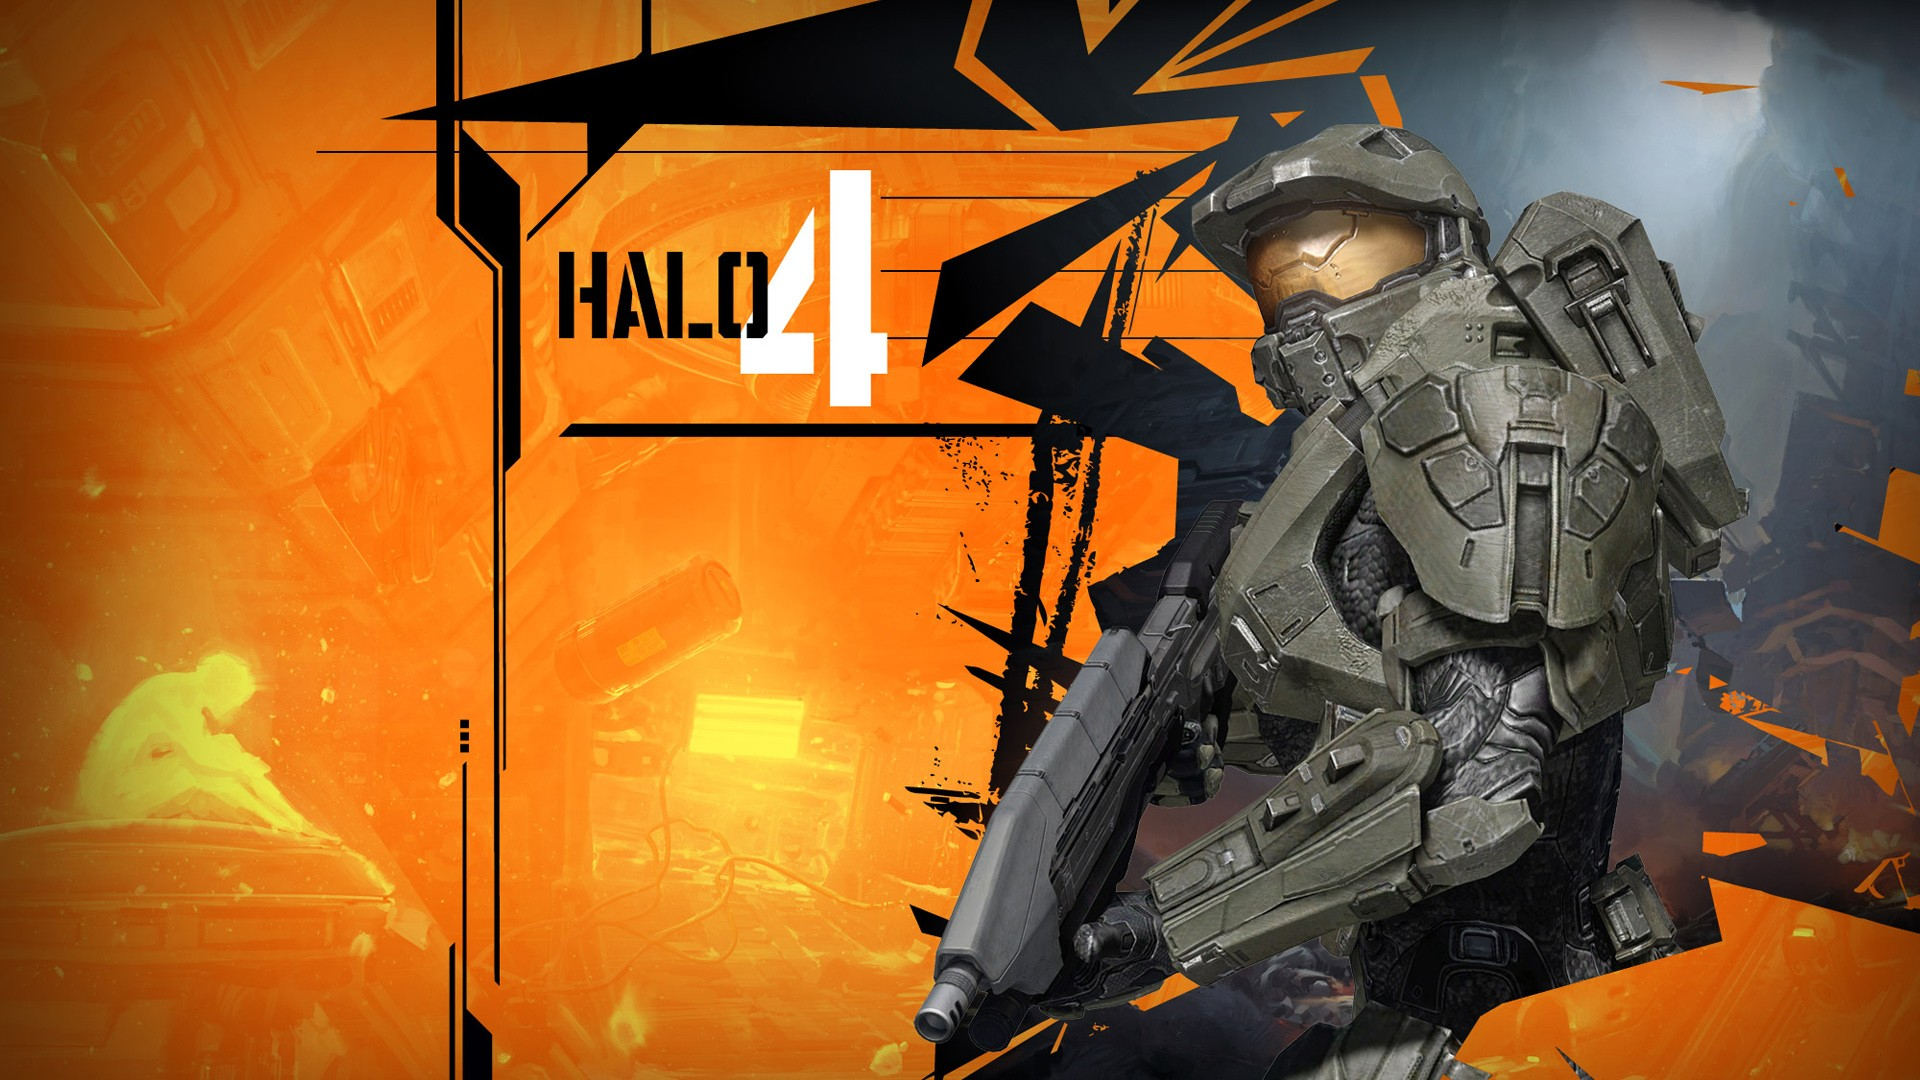 Dual Monitor Fall Wallpaper Halo 4 Concept Art Wallpapers Hd Wallpapers Id 11506